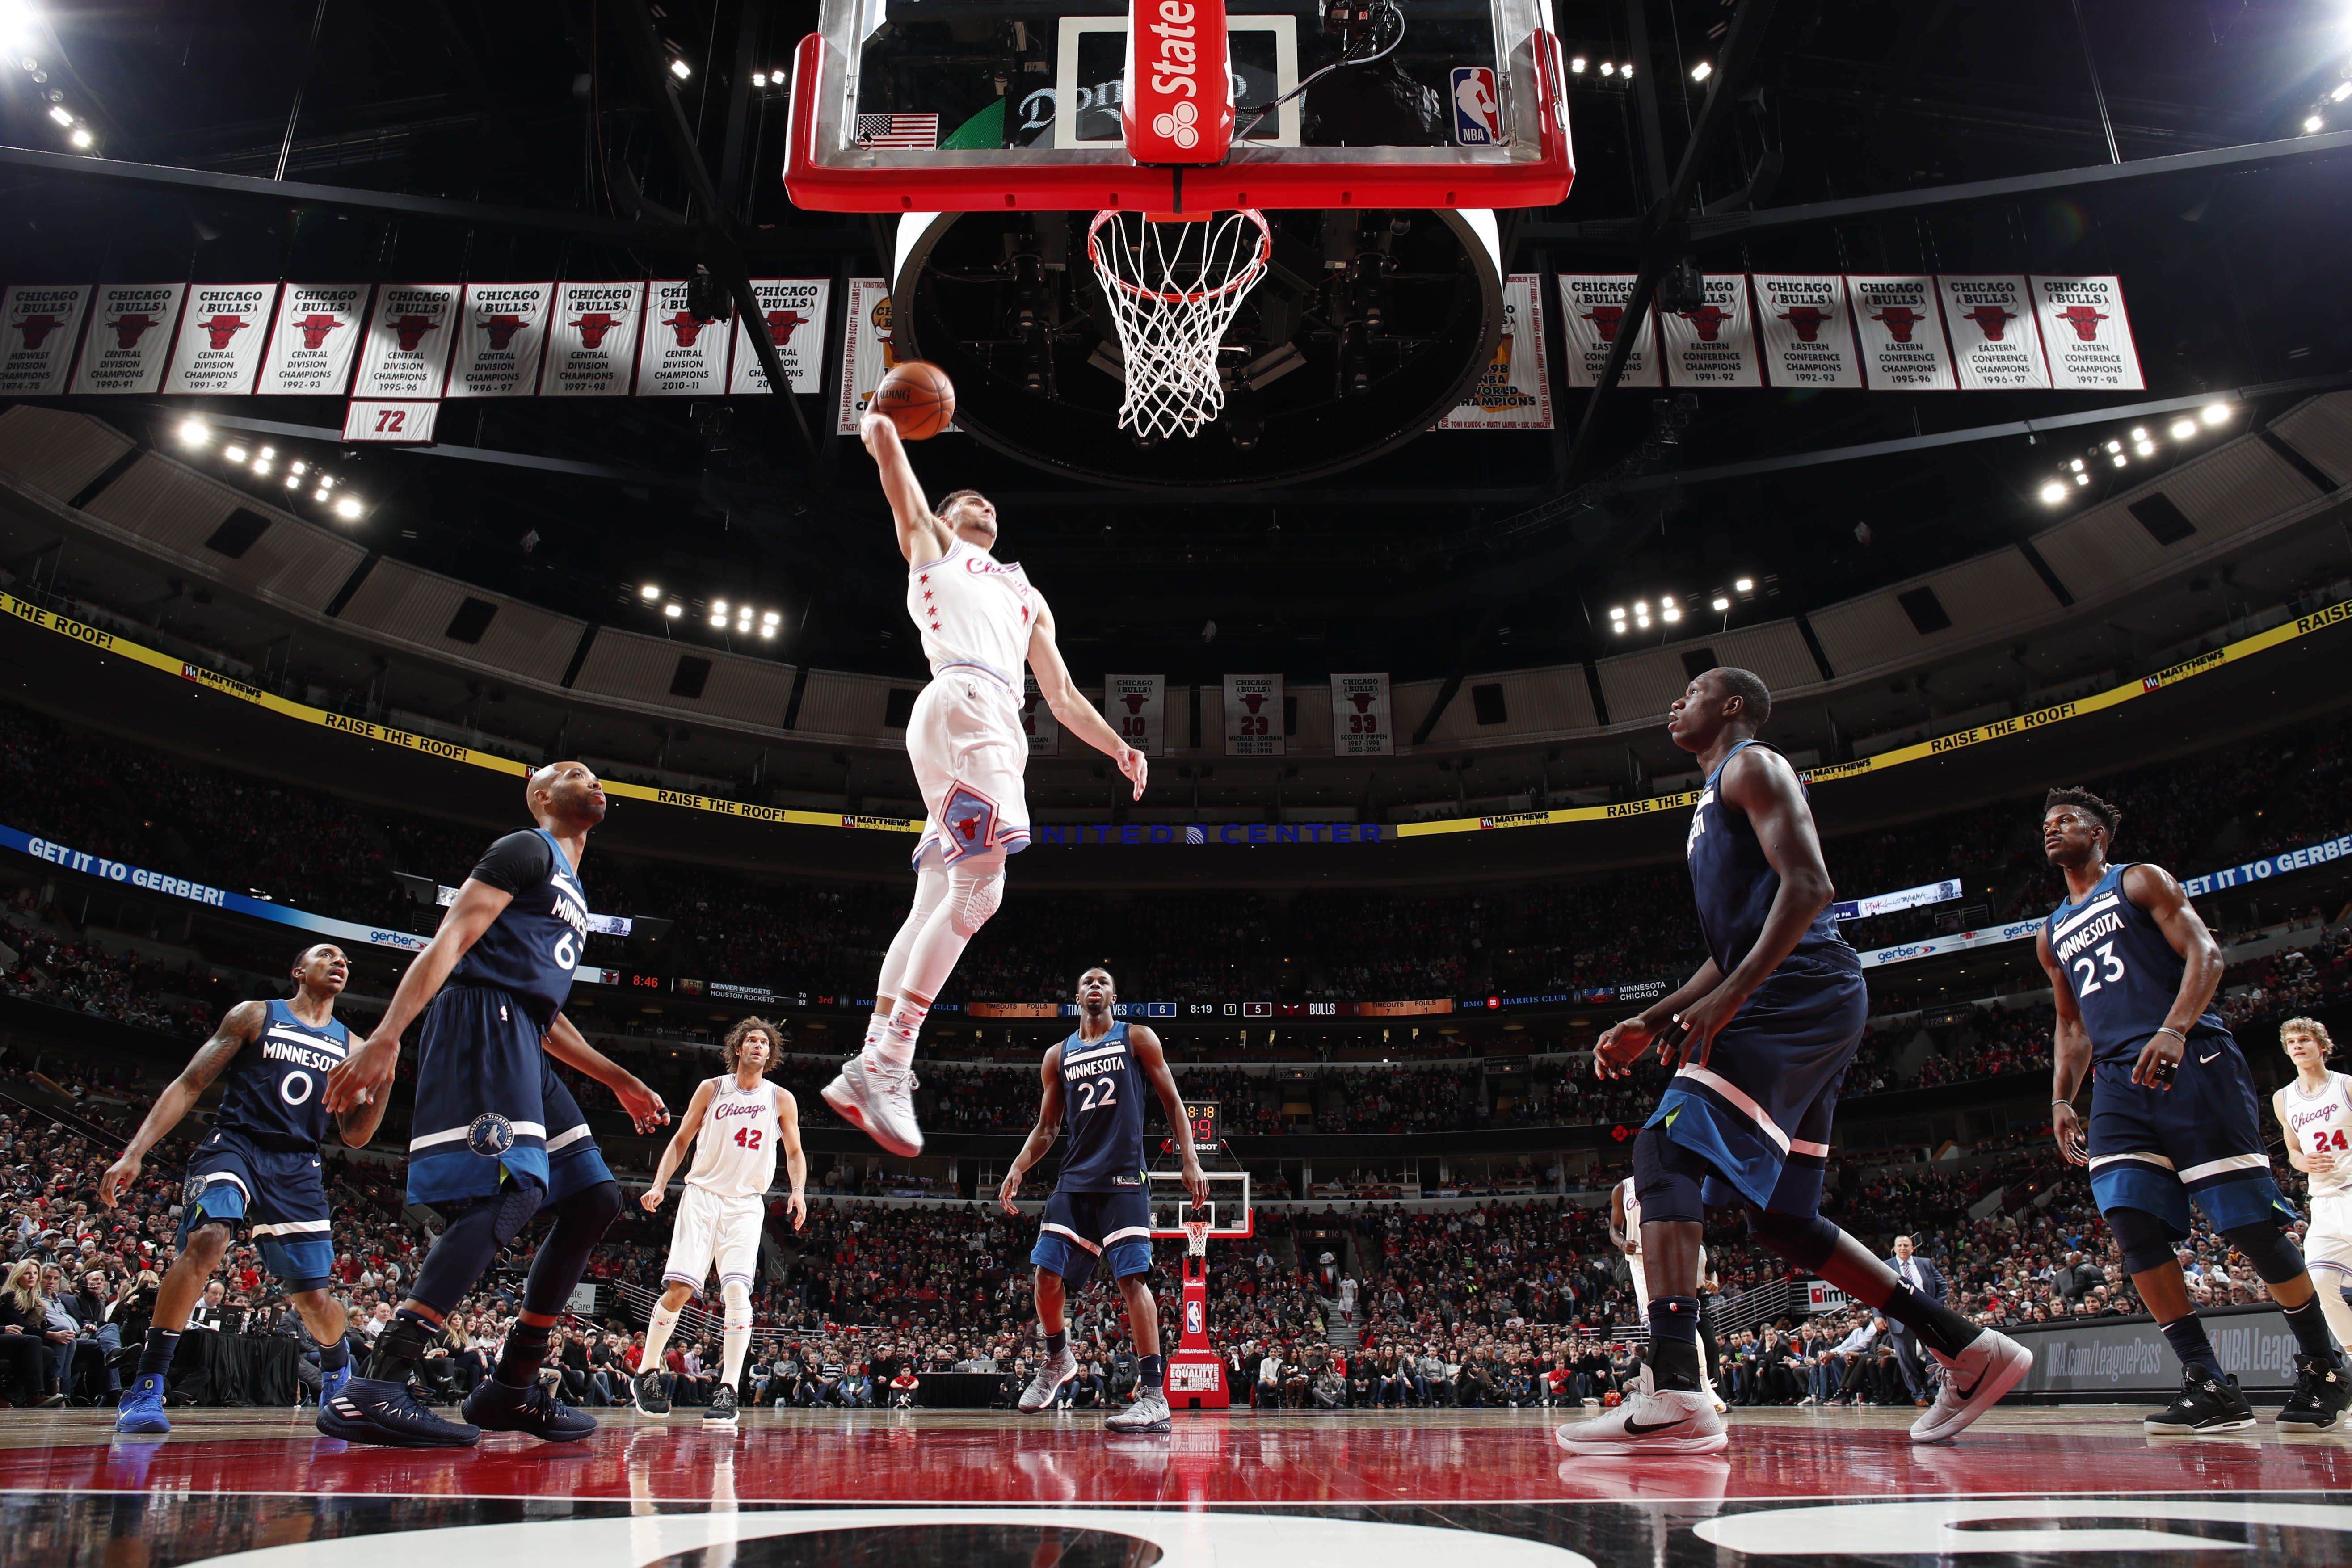 Zach LaVine leads the Chicago Bulls to an impressive victory